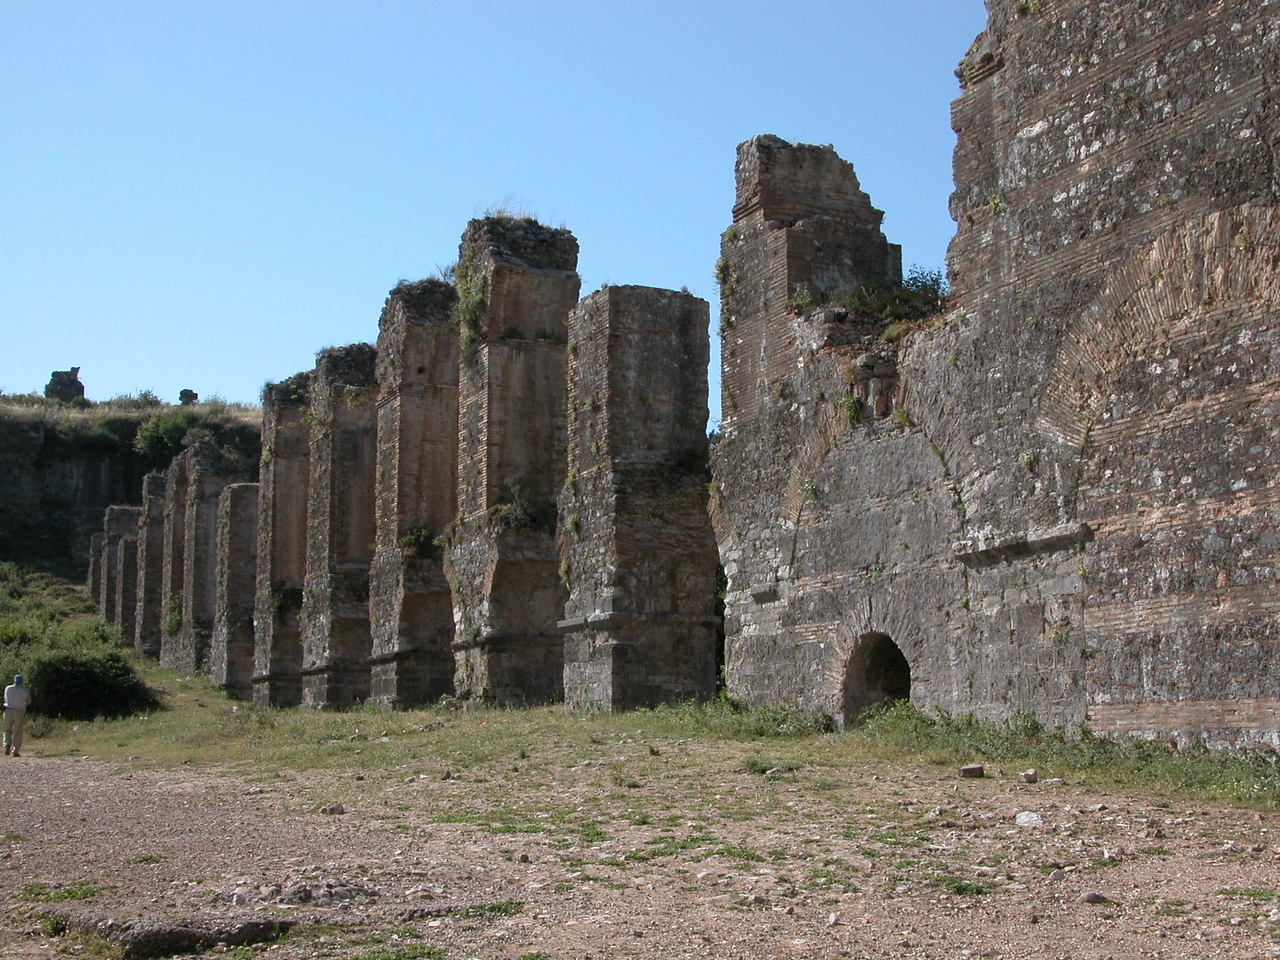 Aquaduct arches and towers